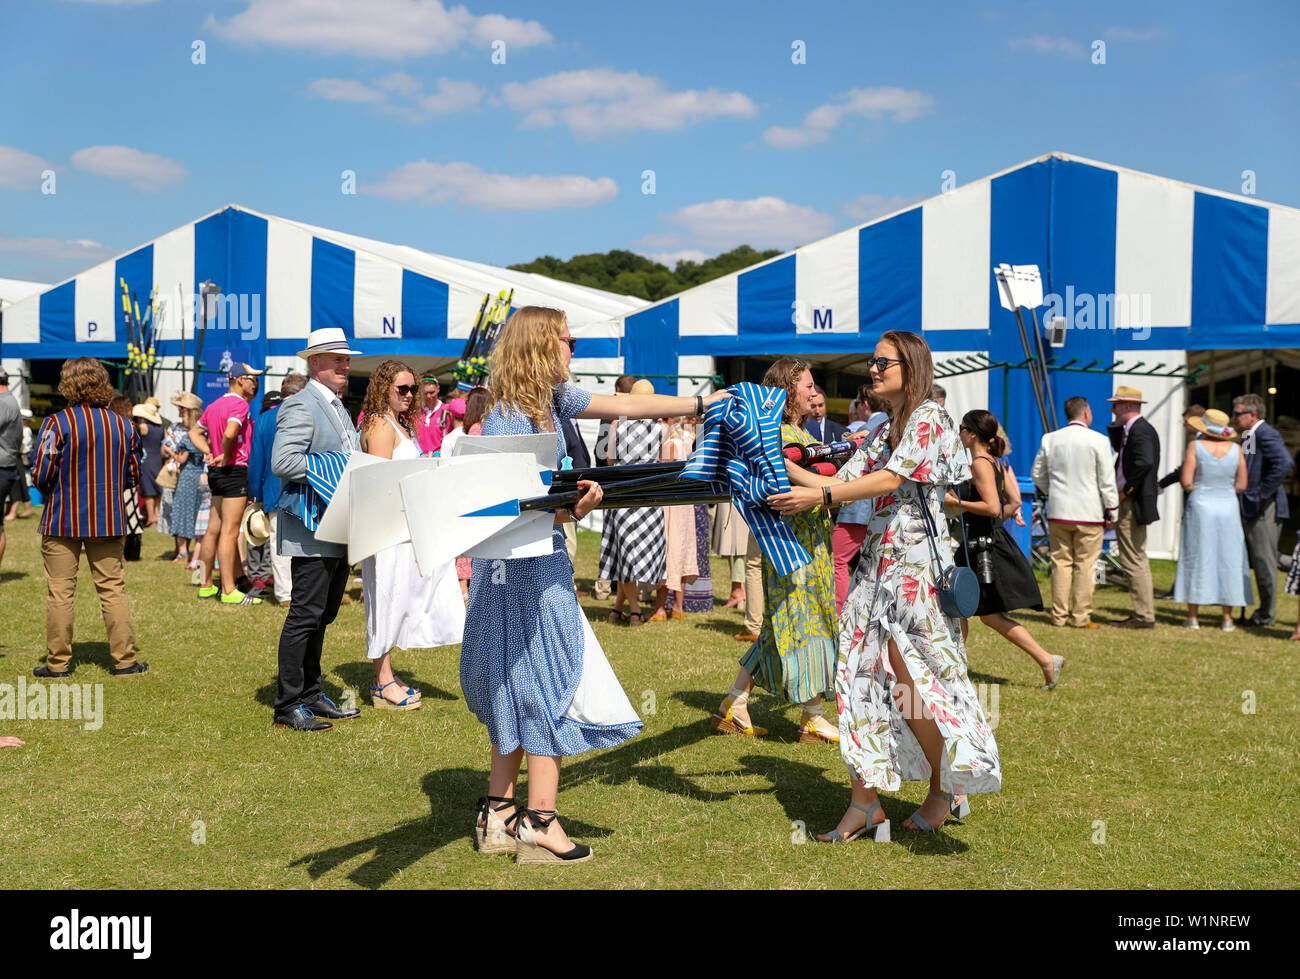 Women carrying oars on the opening day of the 2019 Henley Royal Regatta alongside the river Thames. - Stock Image